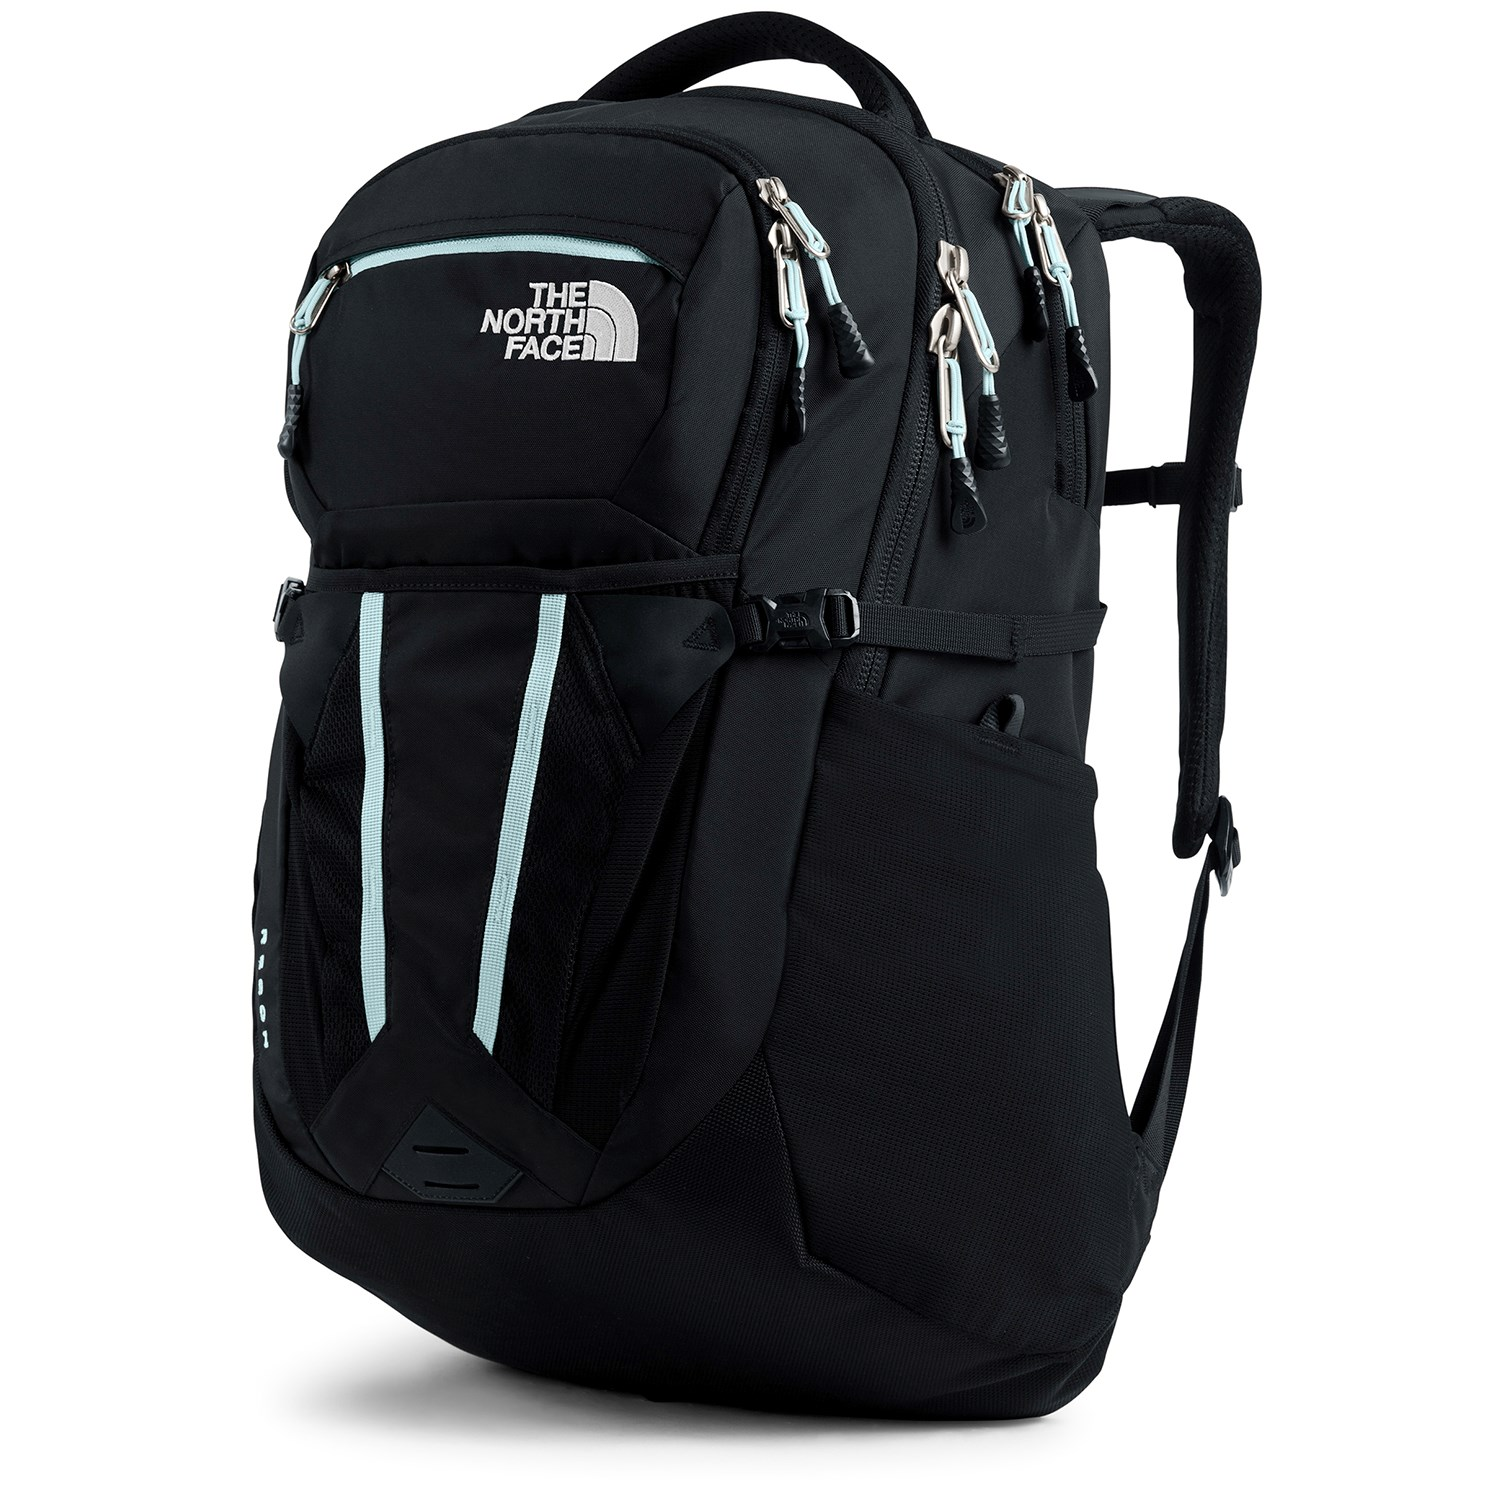 021c9372b The North Face Recon Backpack - Women's